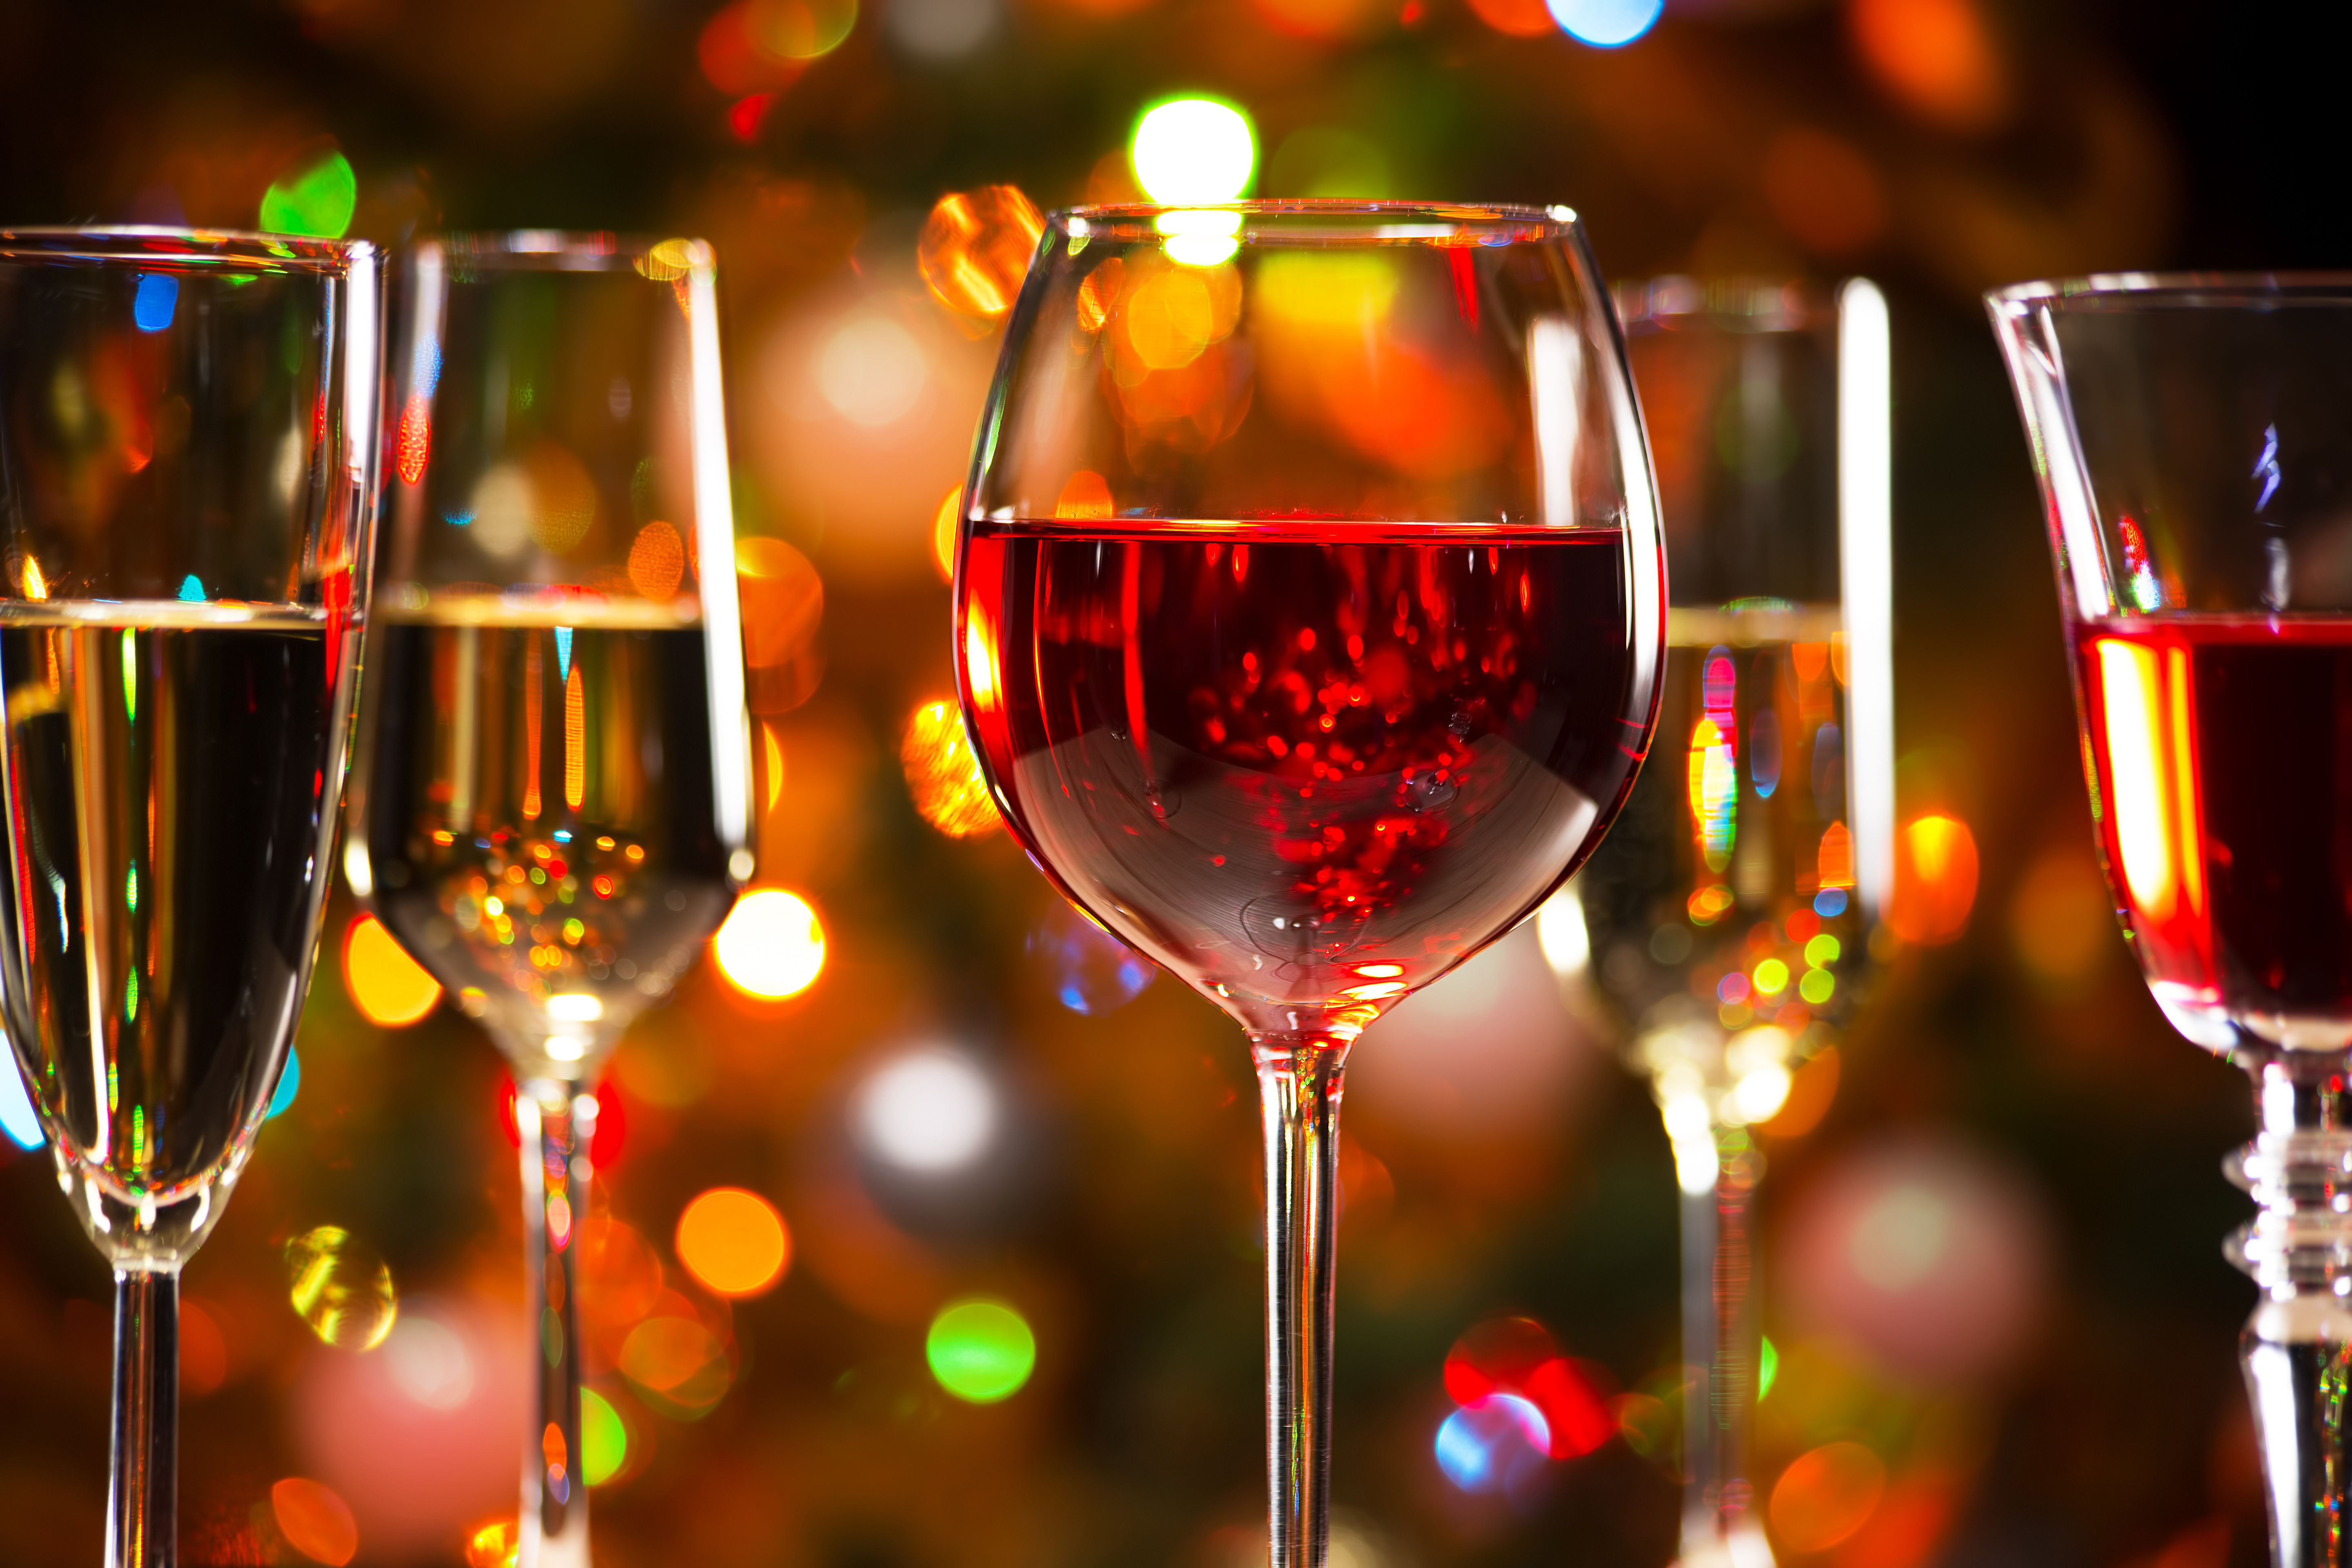 Go Ahead And Enjoy A Glass Of Wine Holiday Drinks Alcohol Xmas Drinks Alcoholic Drinks